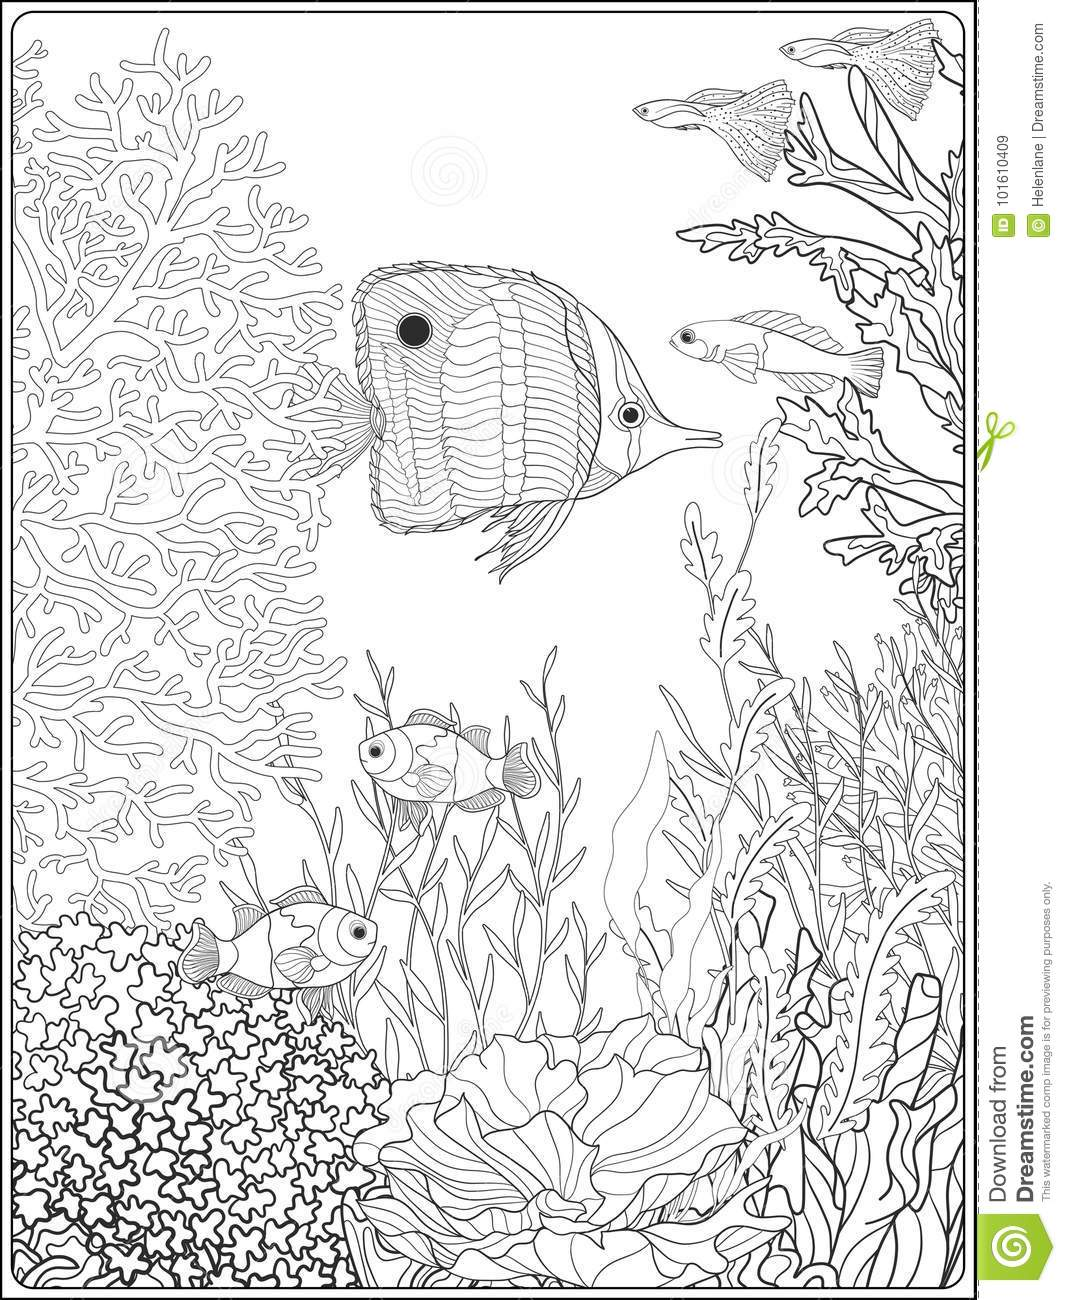 Adult Coloring Book. Coloring Page With Underwater World ...